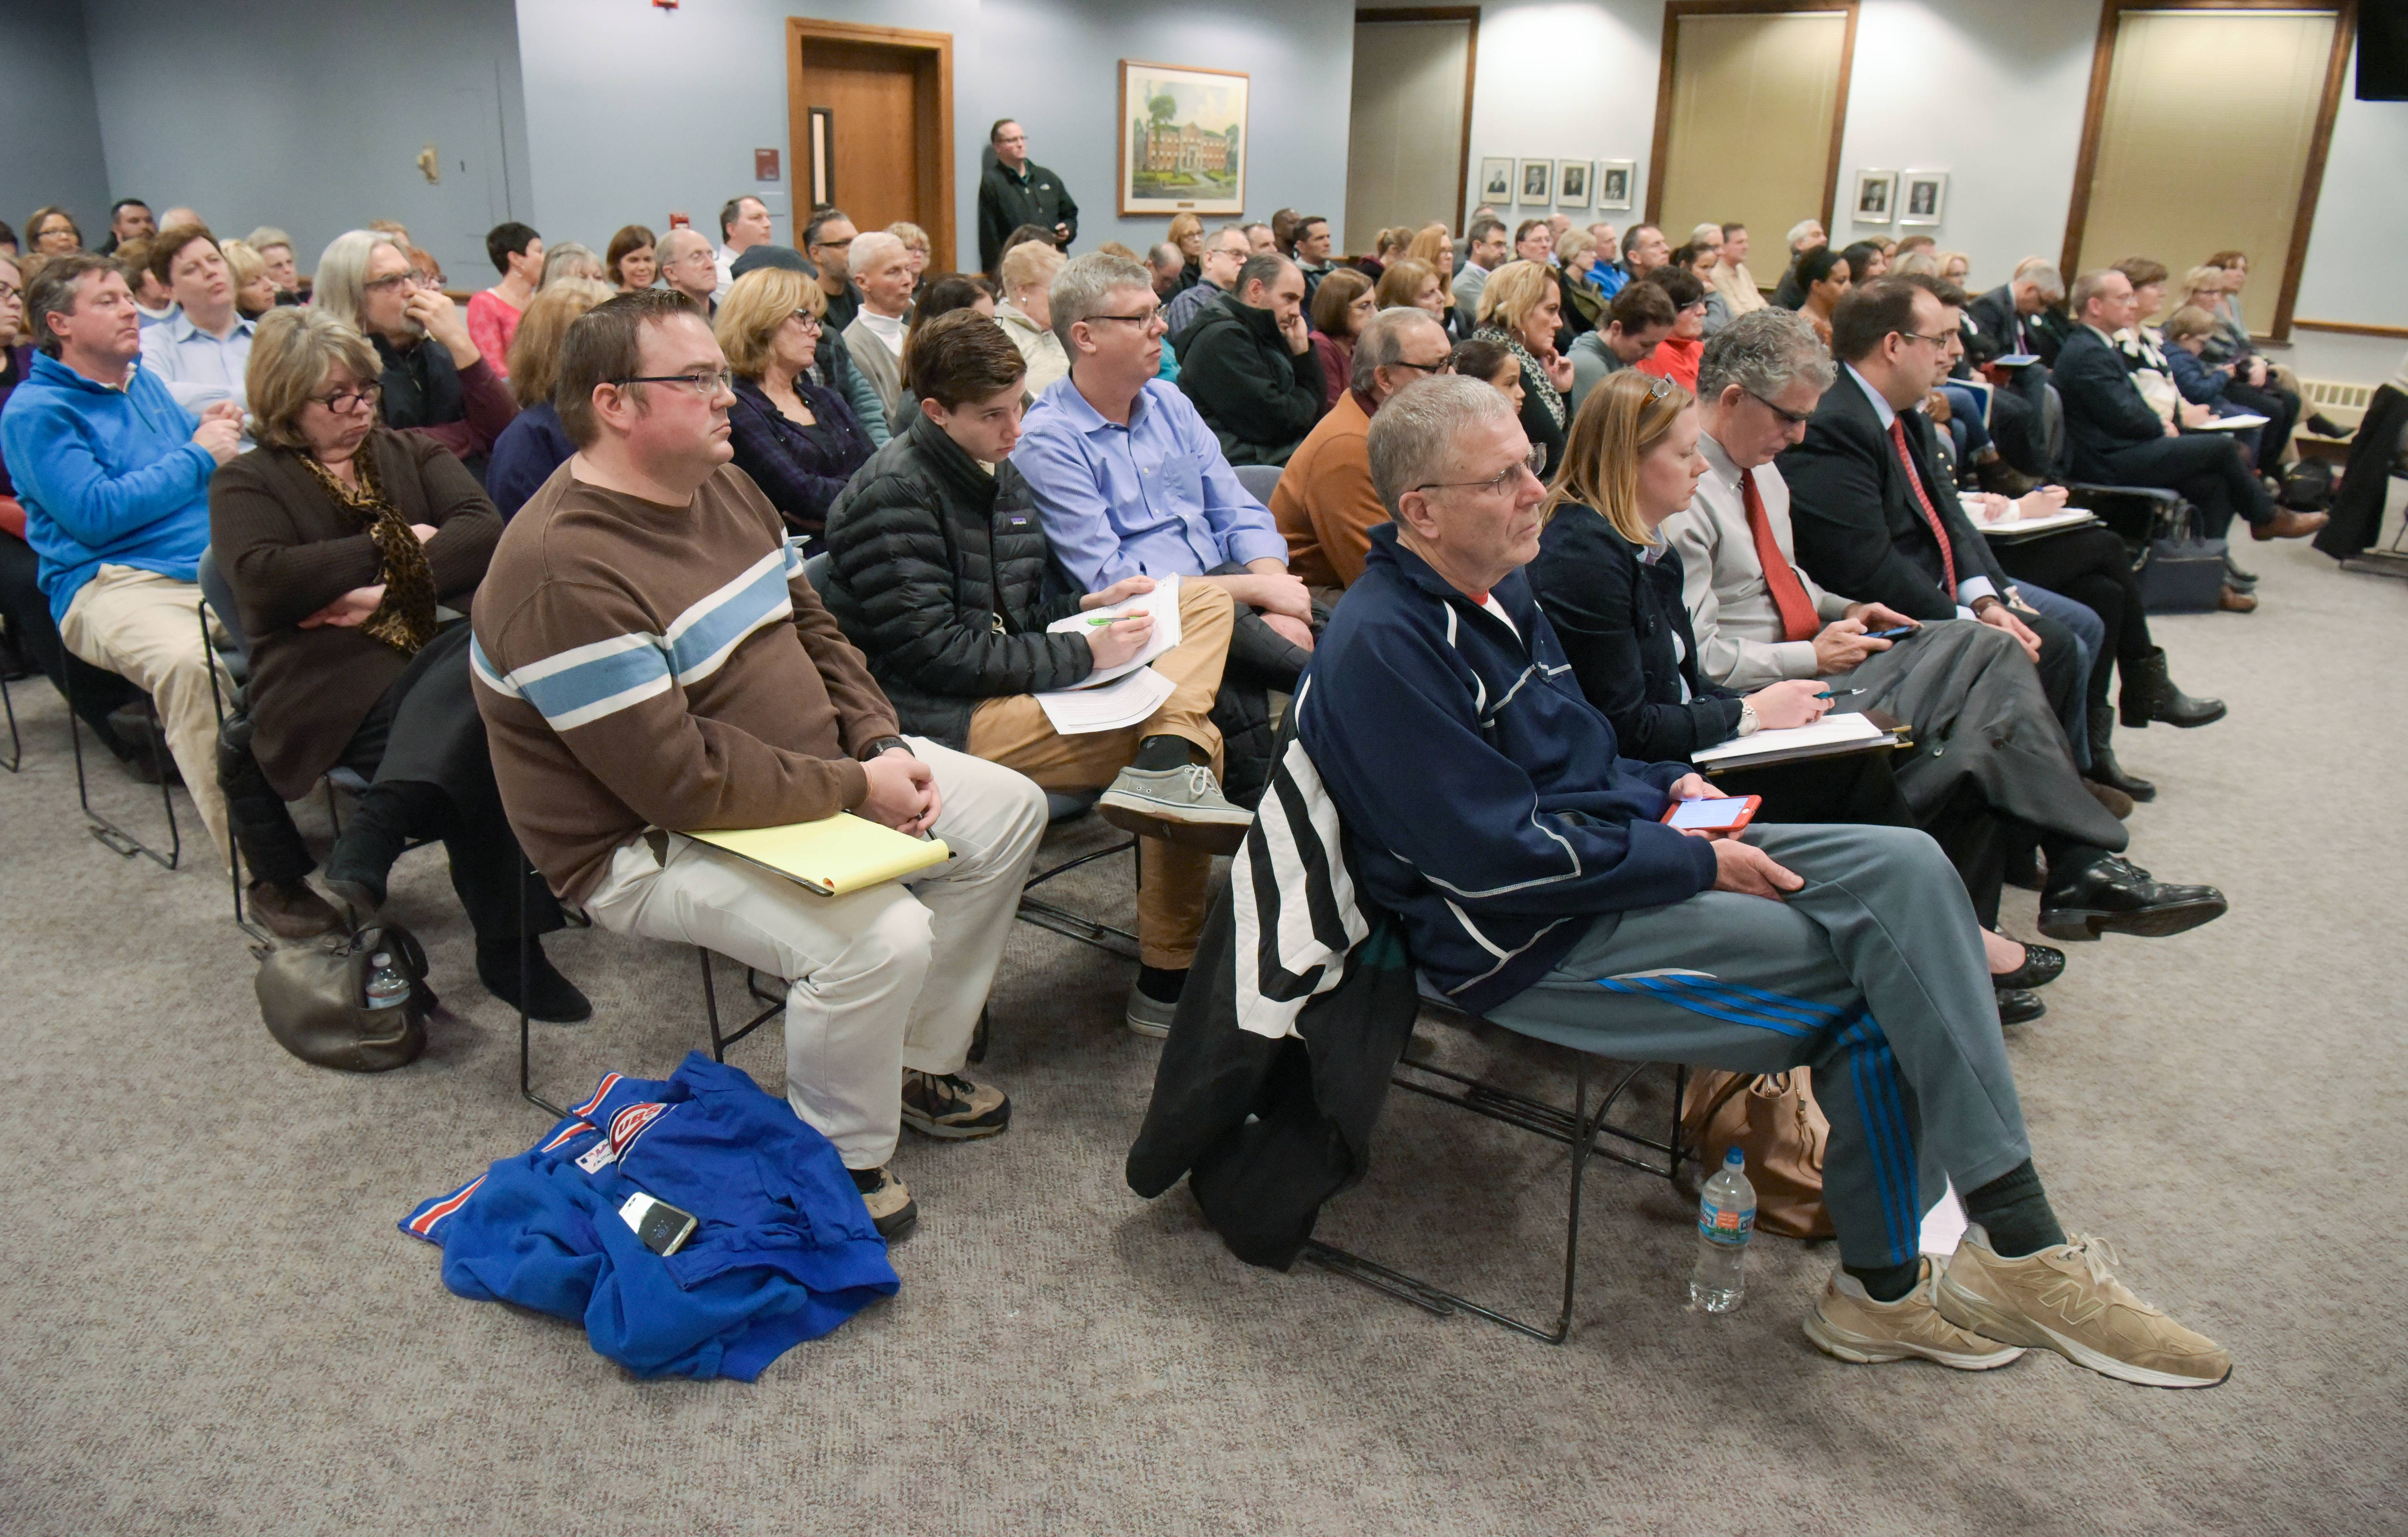 More than 100 people attended a Wheaton planning and zoning board meeting Tuesday where the panel voted against a permit for a residential drug treatment center. The city council will make the final decision.